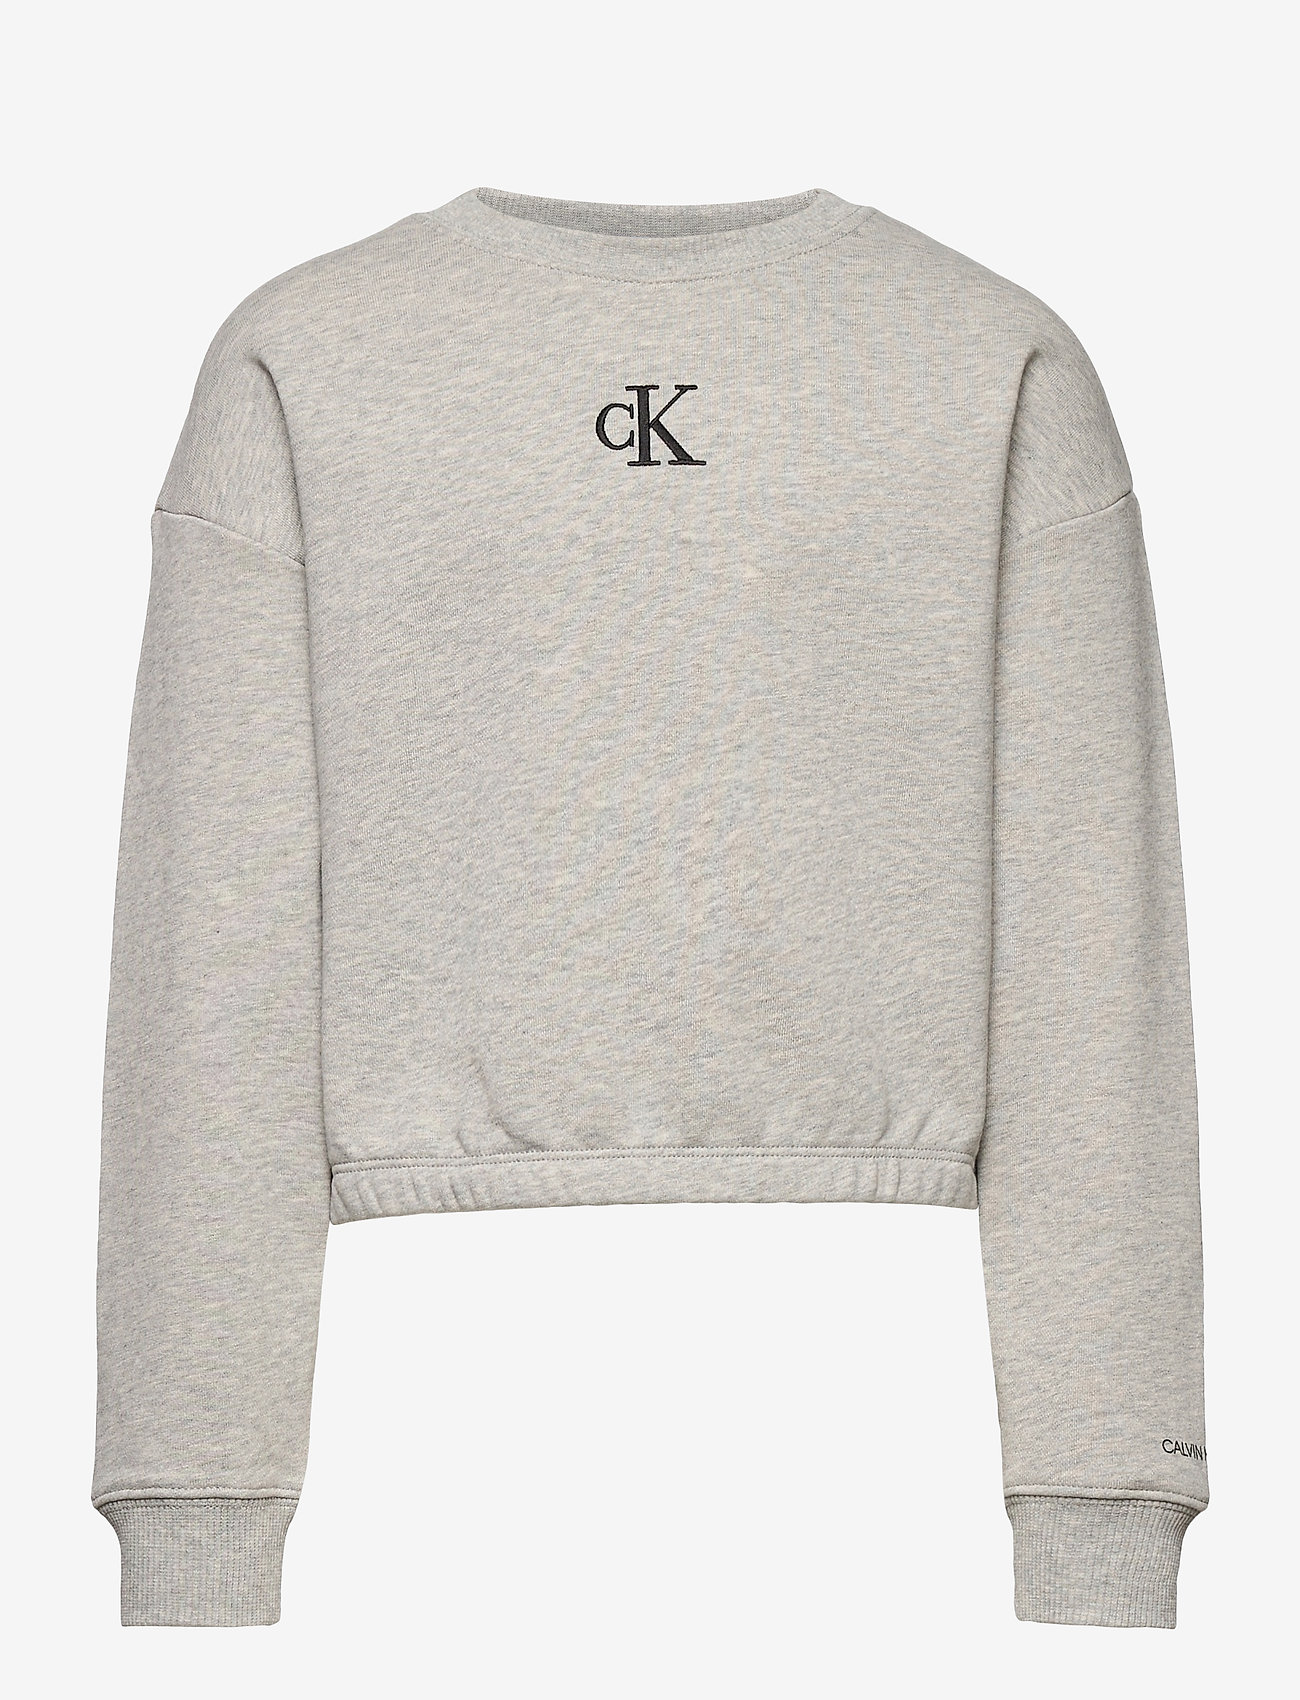 Calvin Klein - LOGO BOXY SWEATSHIRT - sweatshirts - light grey heather - 0